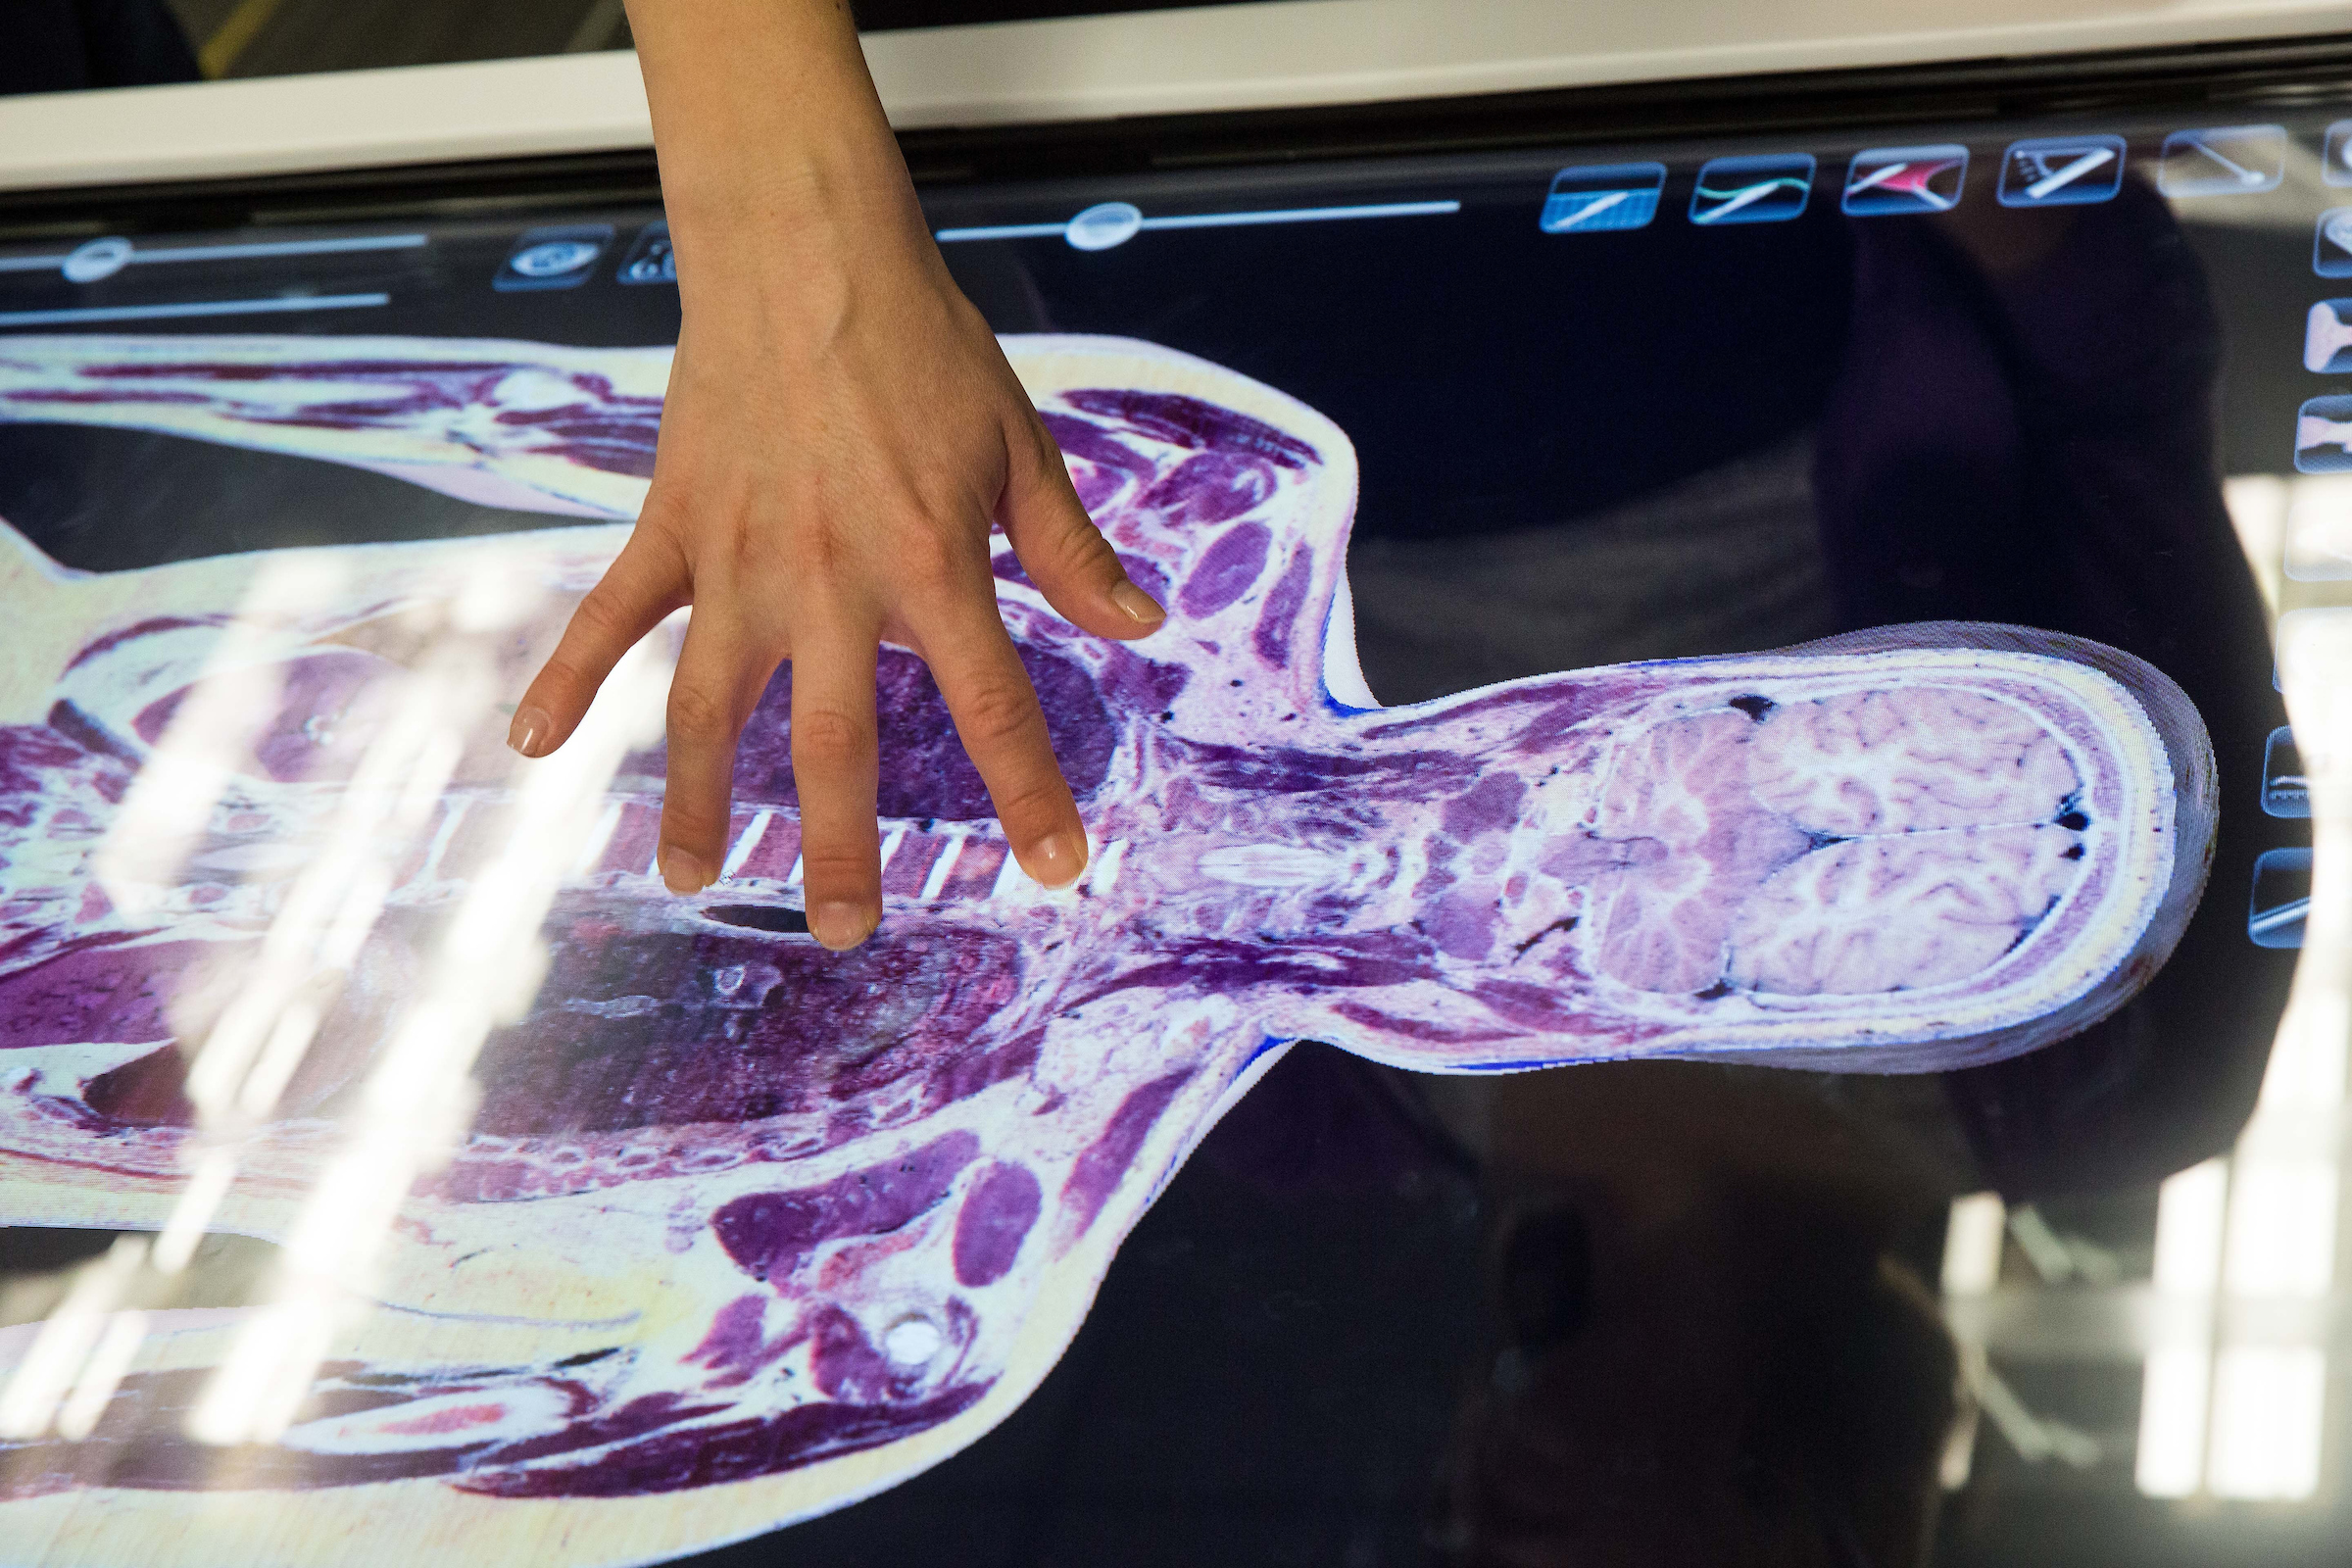 Digital cadavers bring students a deeper understanding of anatomy ...